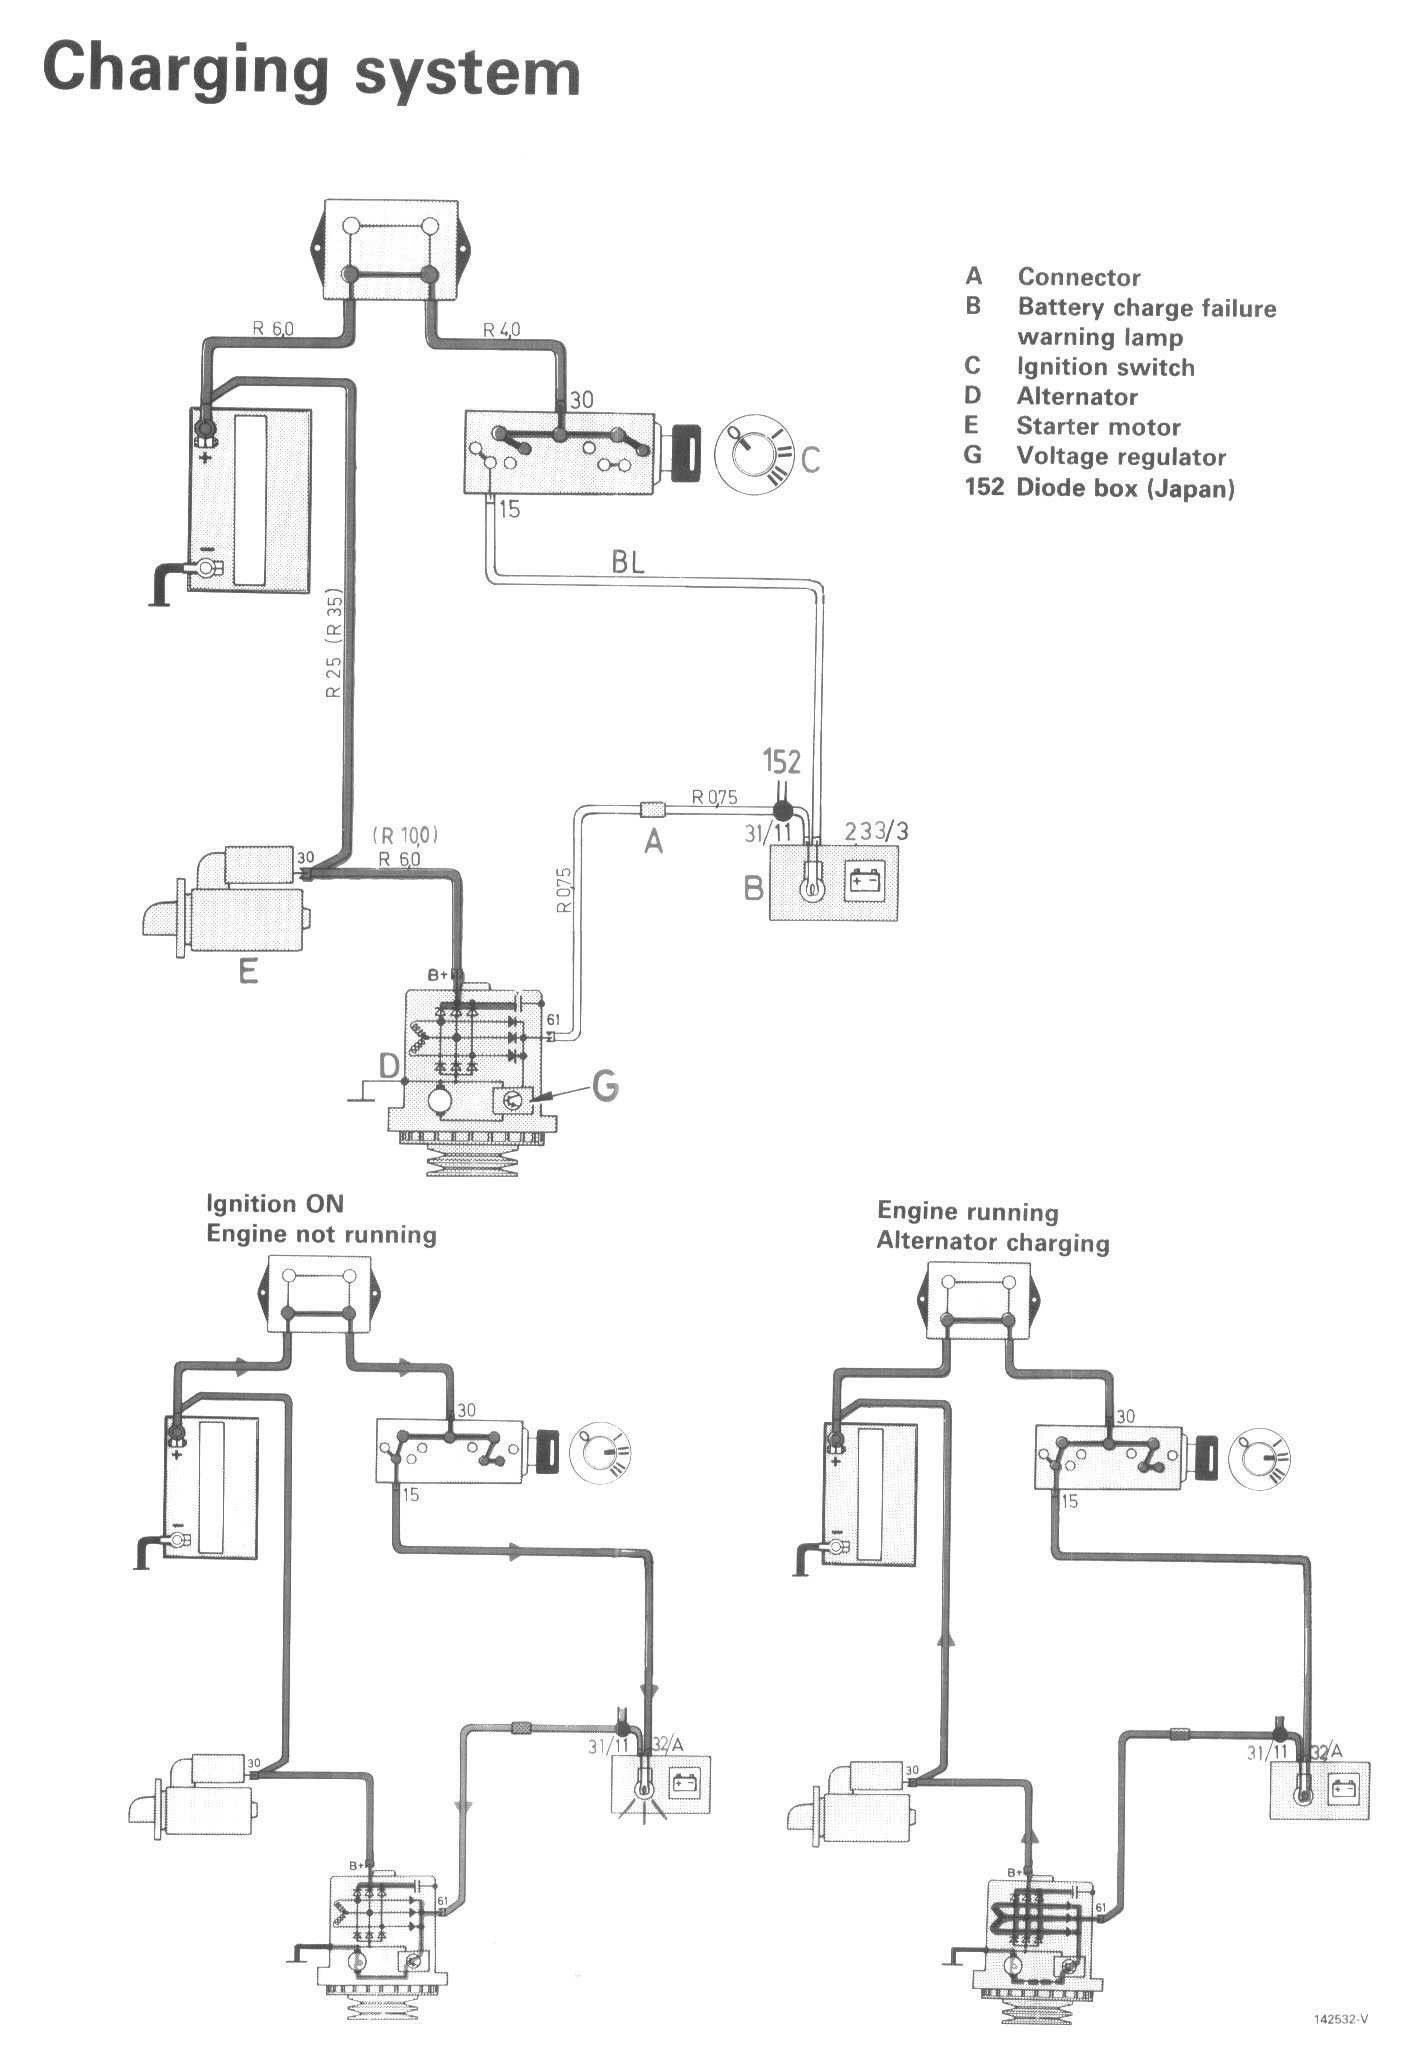 Volvo Penta Outdrive Wiring Diagram 40 Sx Parts   domainadvice.org ...